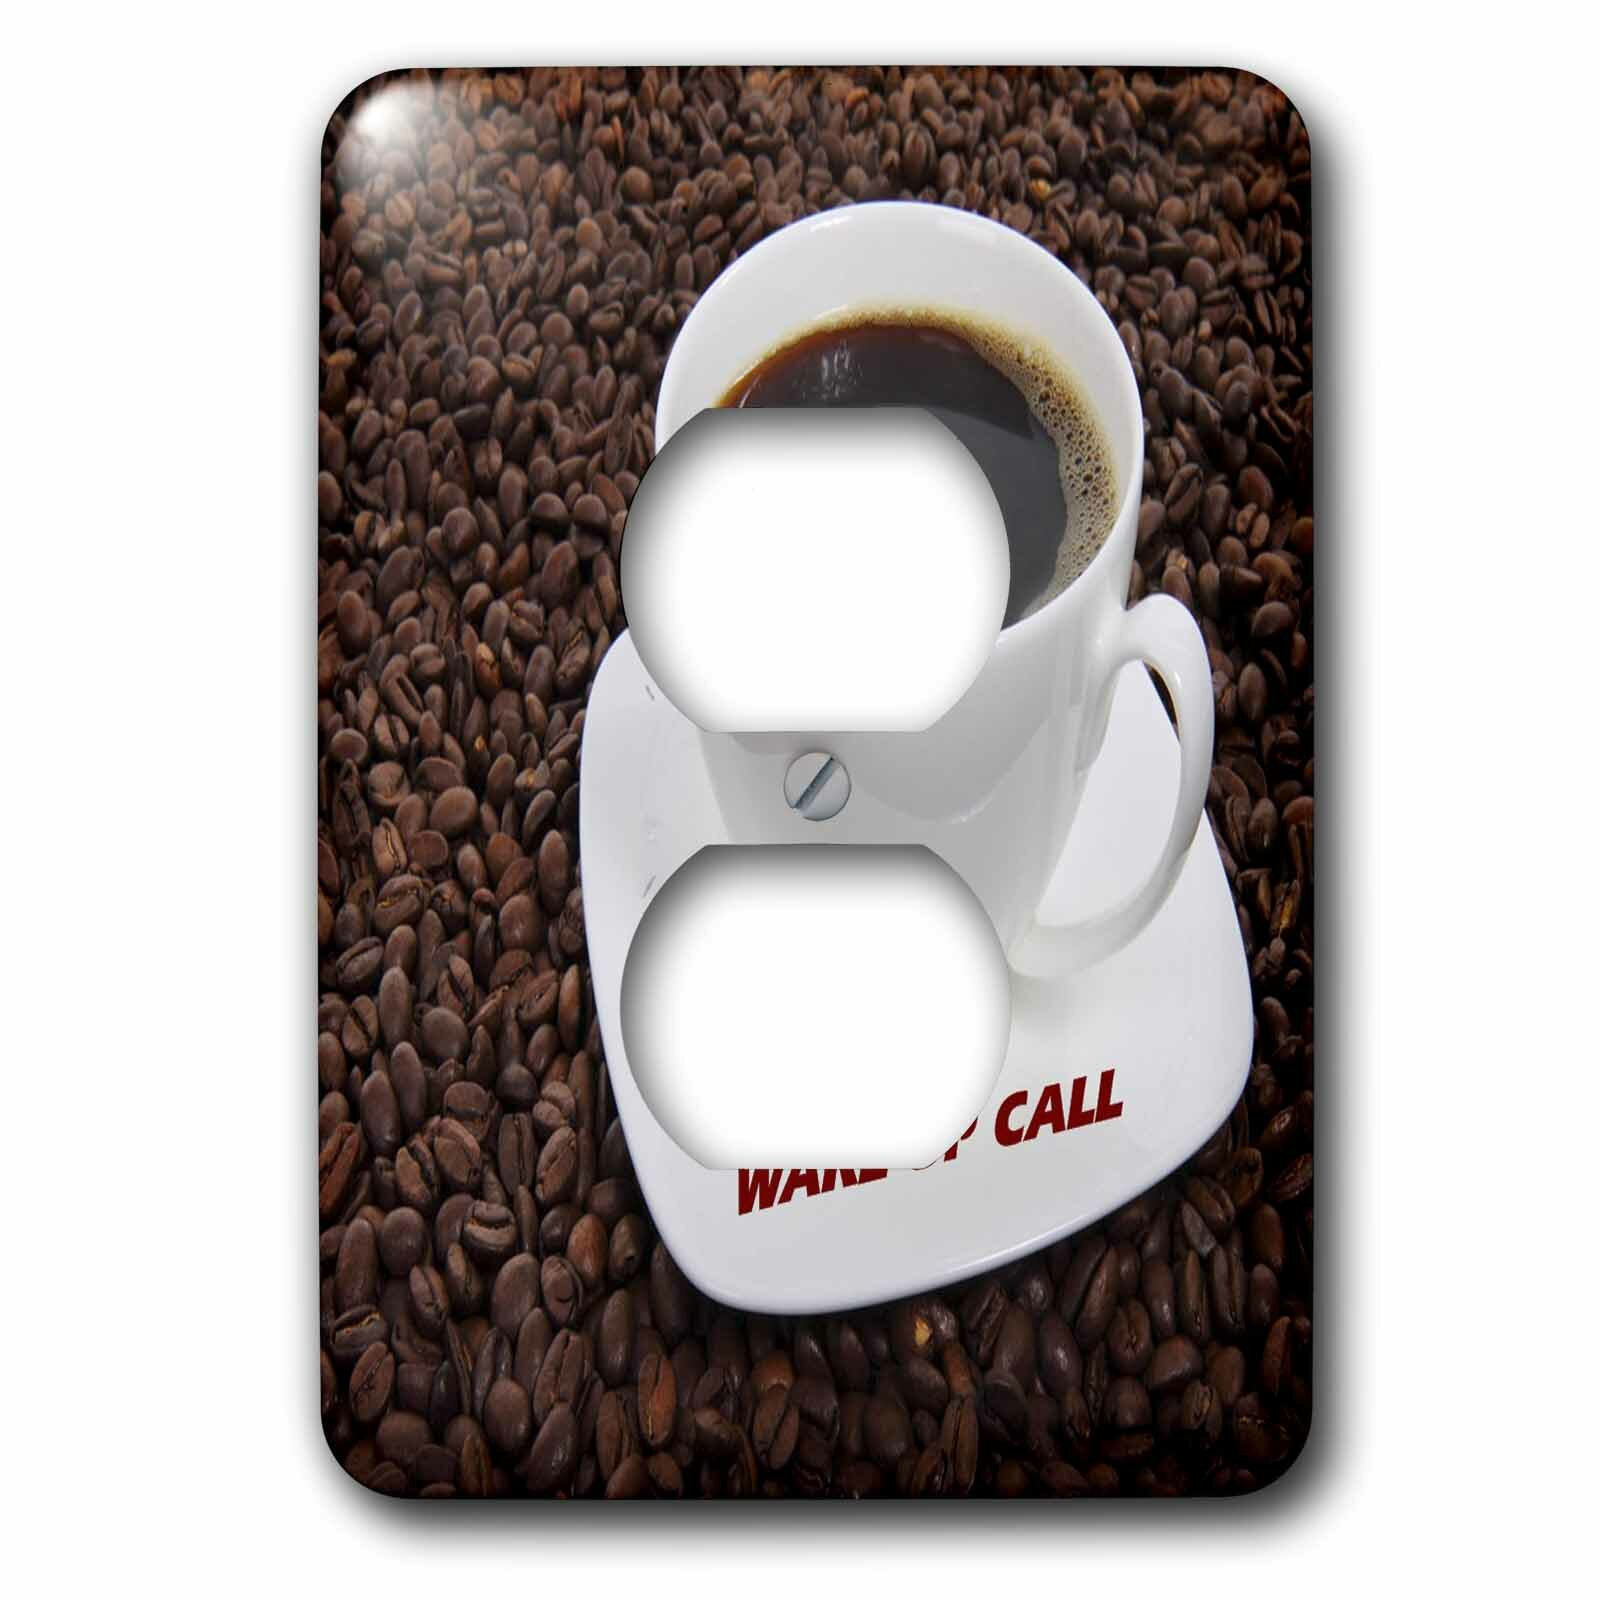 3drose Wake Up Call On Coffee Cup N Beans 1 Gang Duplex Outlet Wall Plate Wayfair